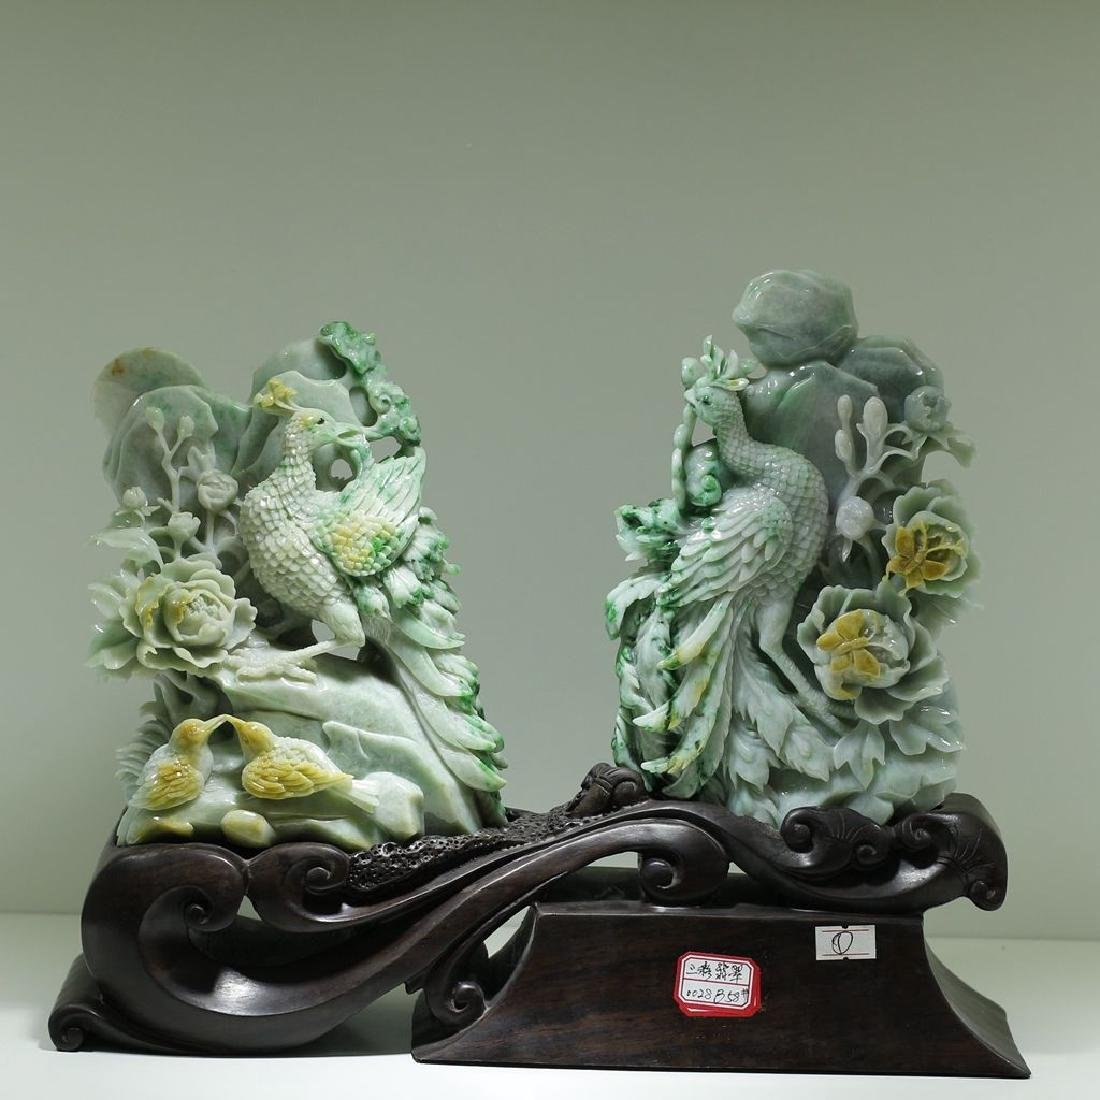 A Carved Jade Decorated Statue